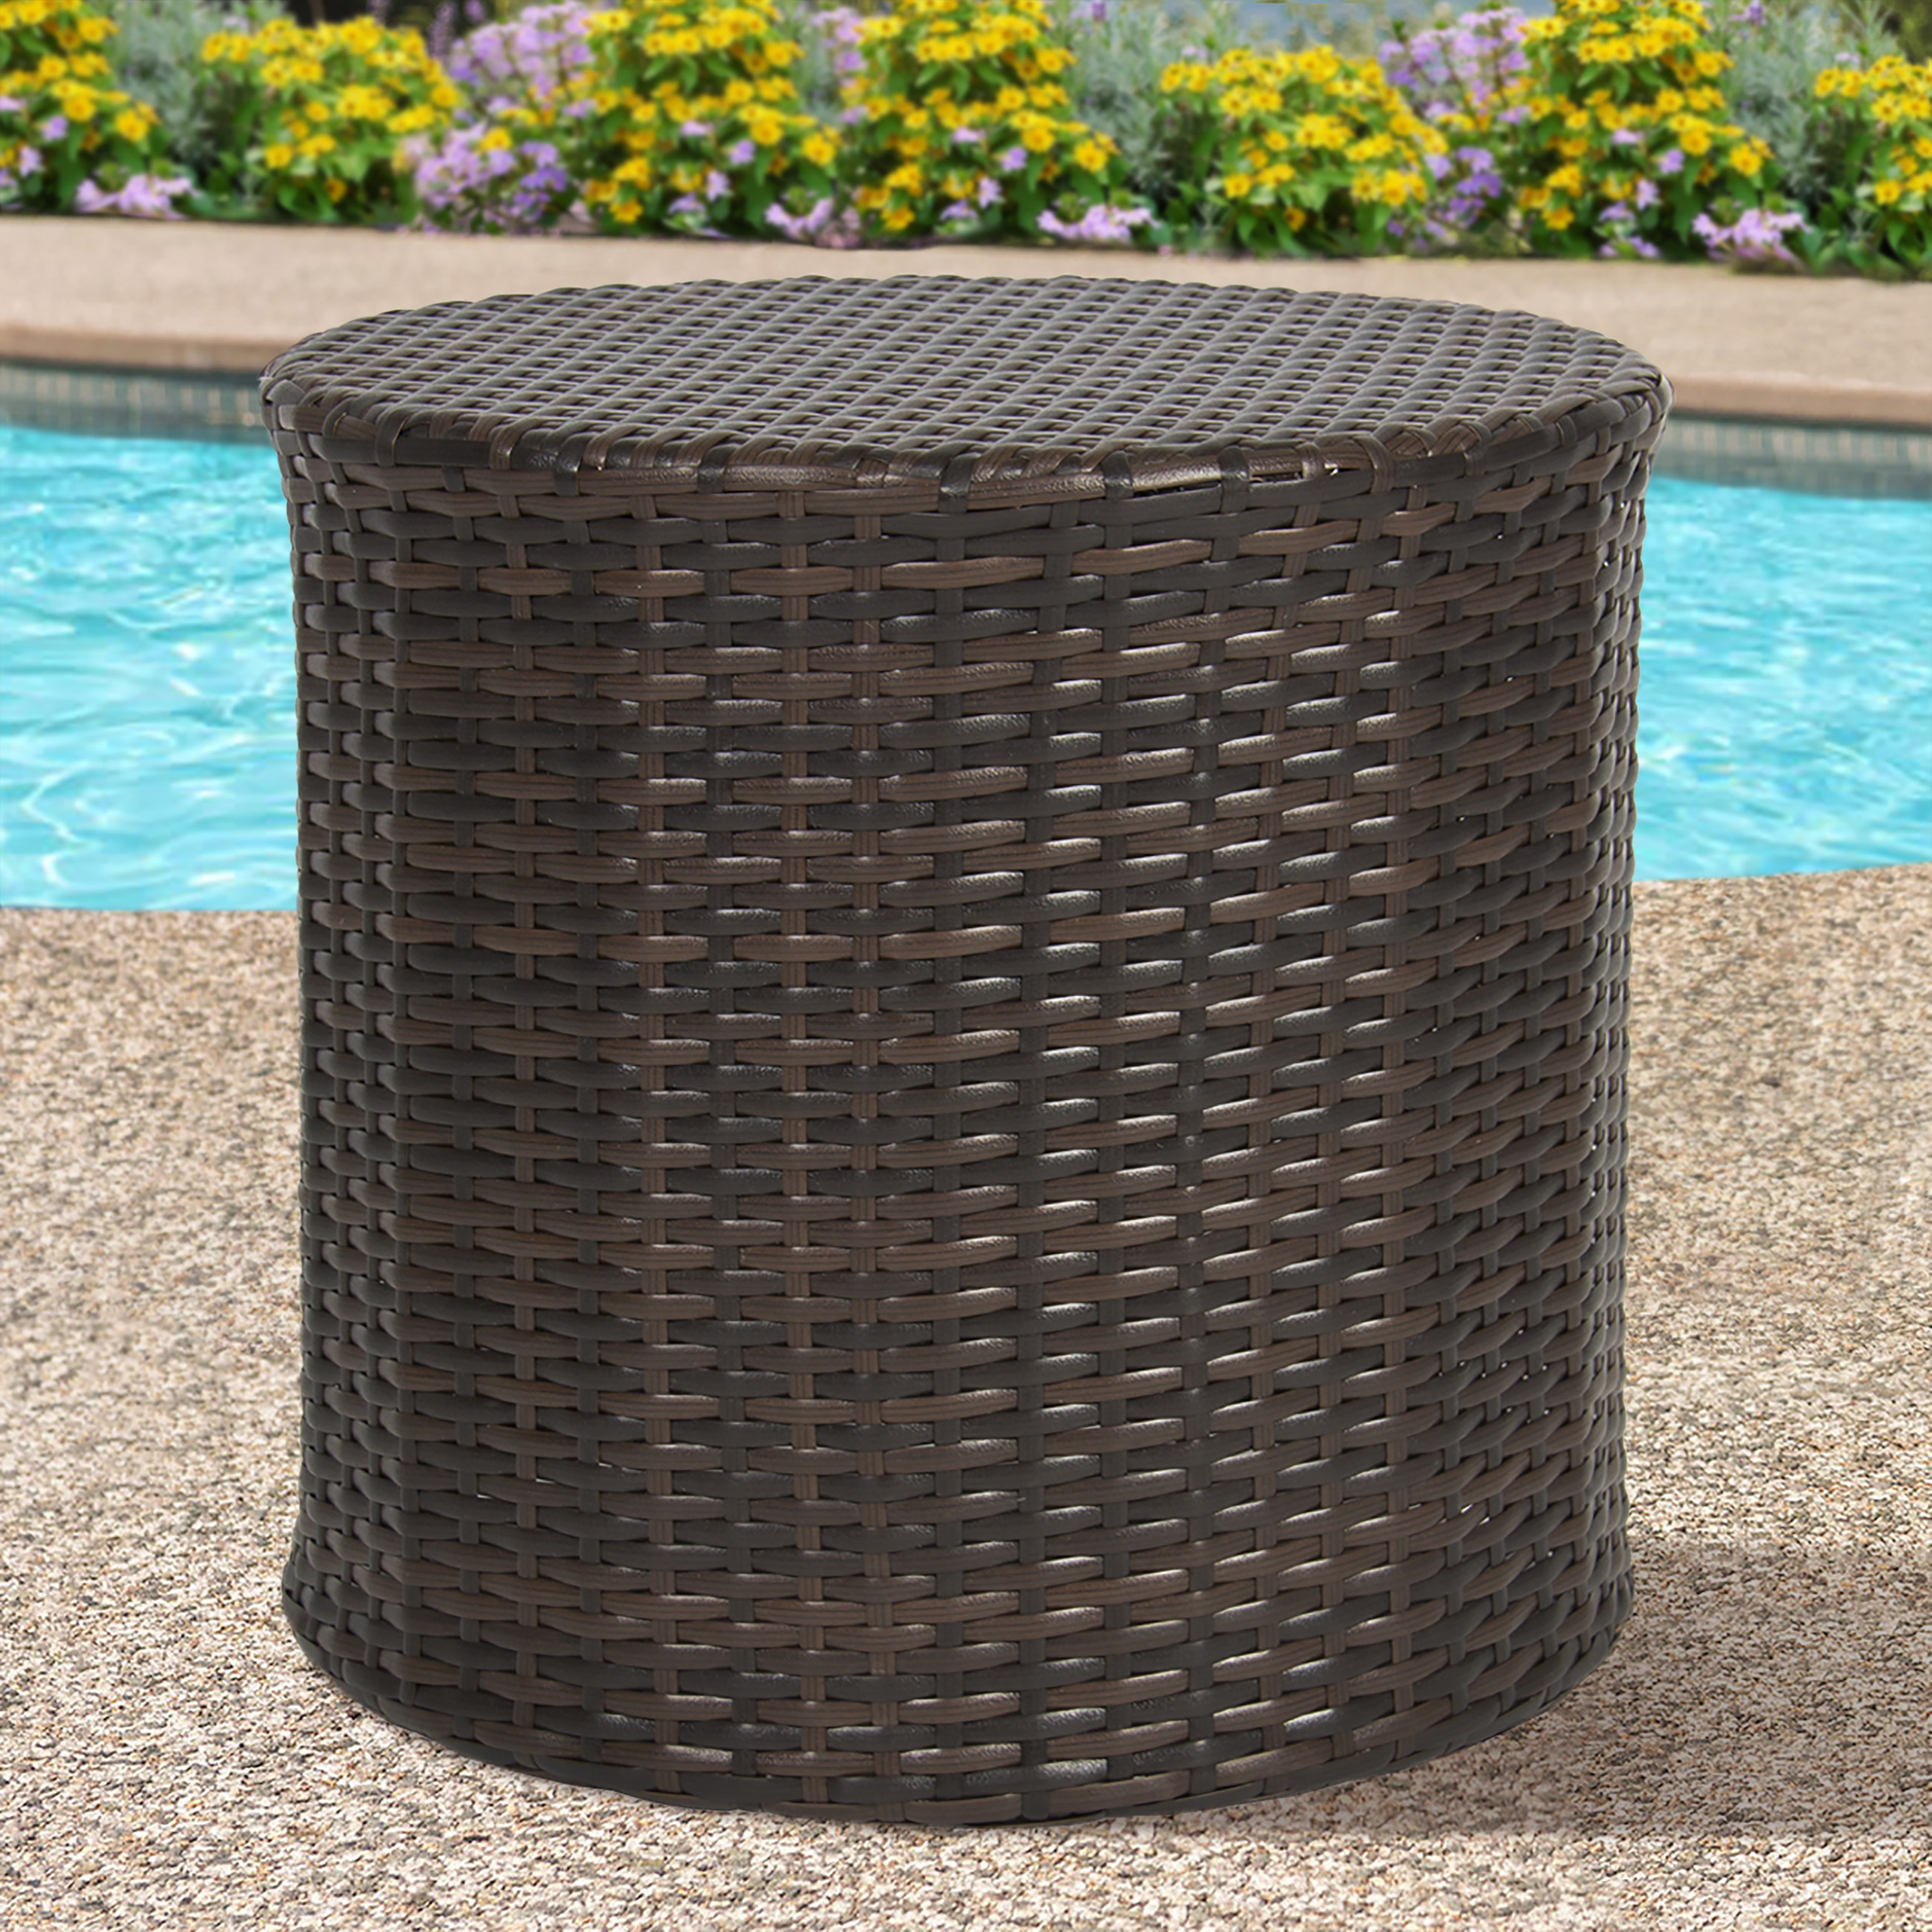 unique end tables diy the fantastic beautiful brown wicker outdoor side table best choice products rattan barrel patio furniture garden backyard pool laura ashley beds inexpensive